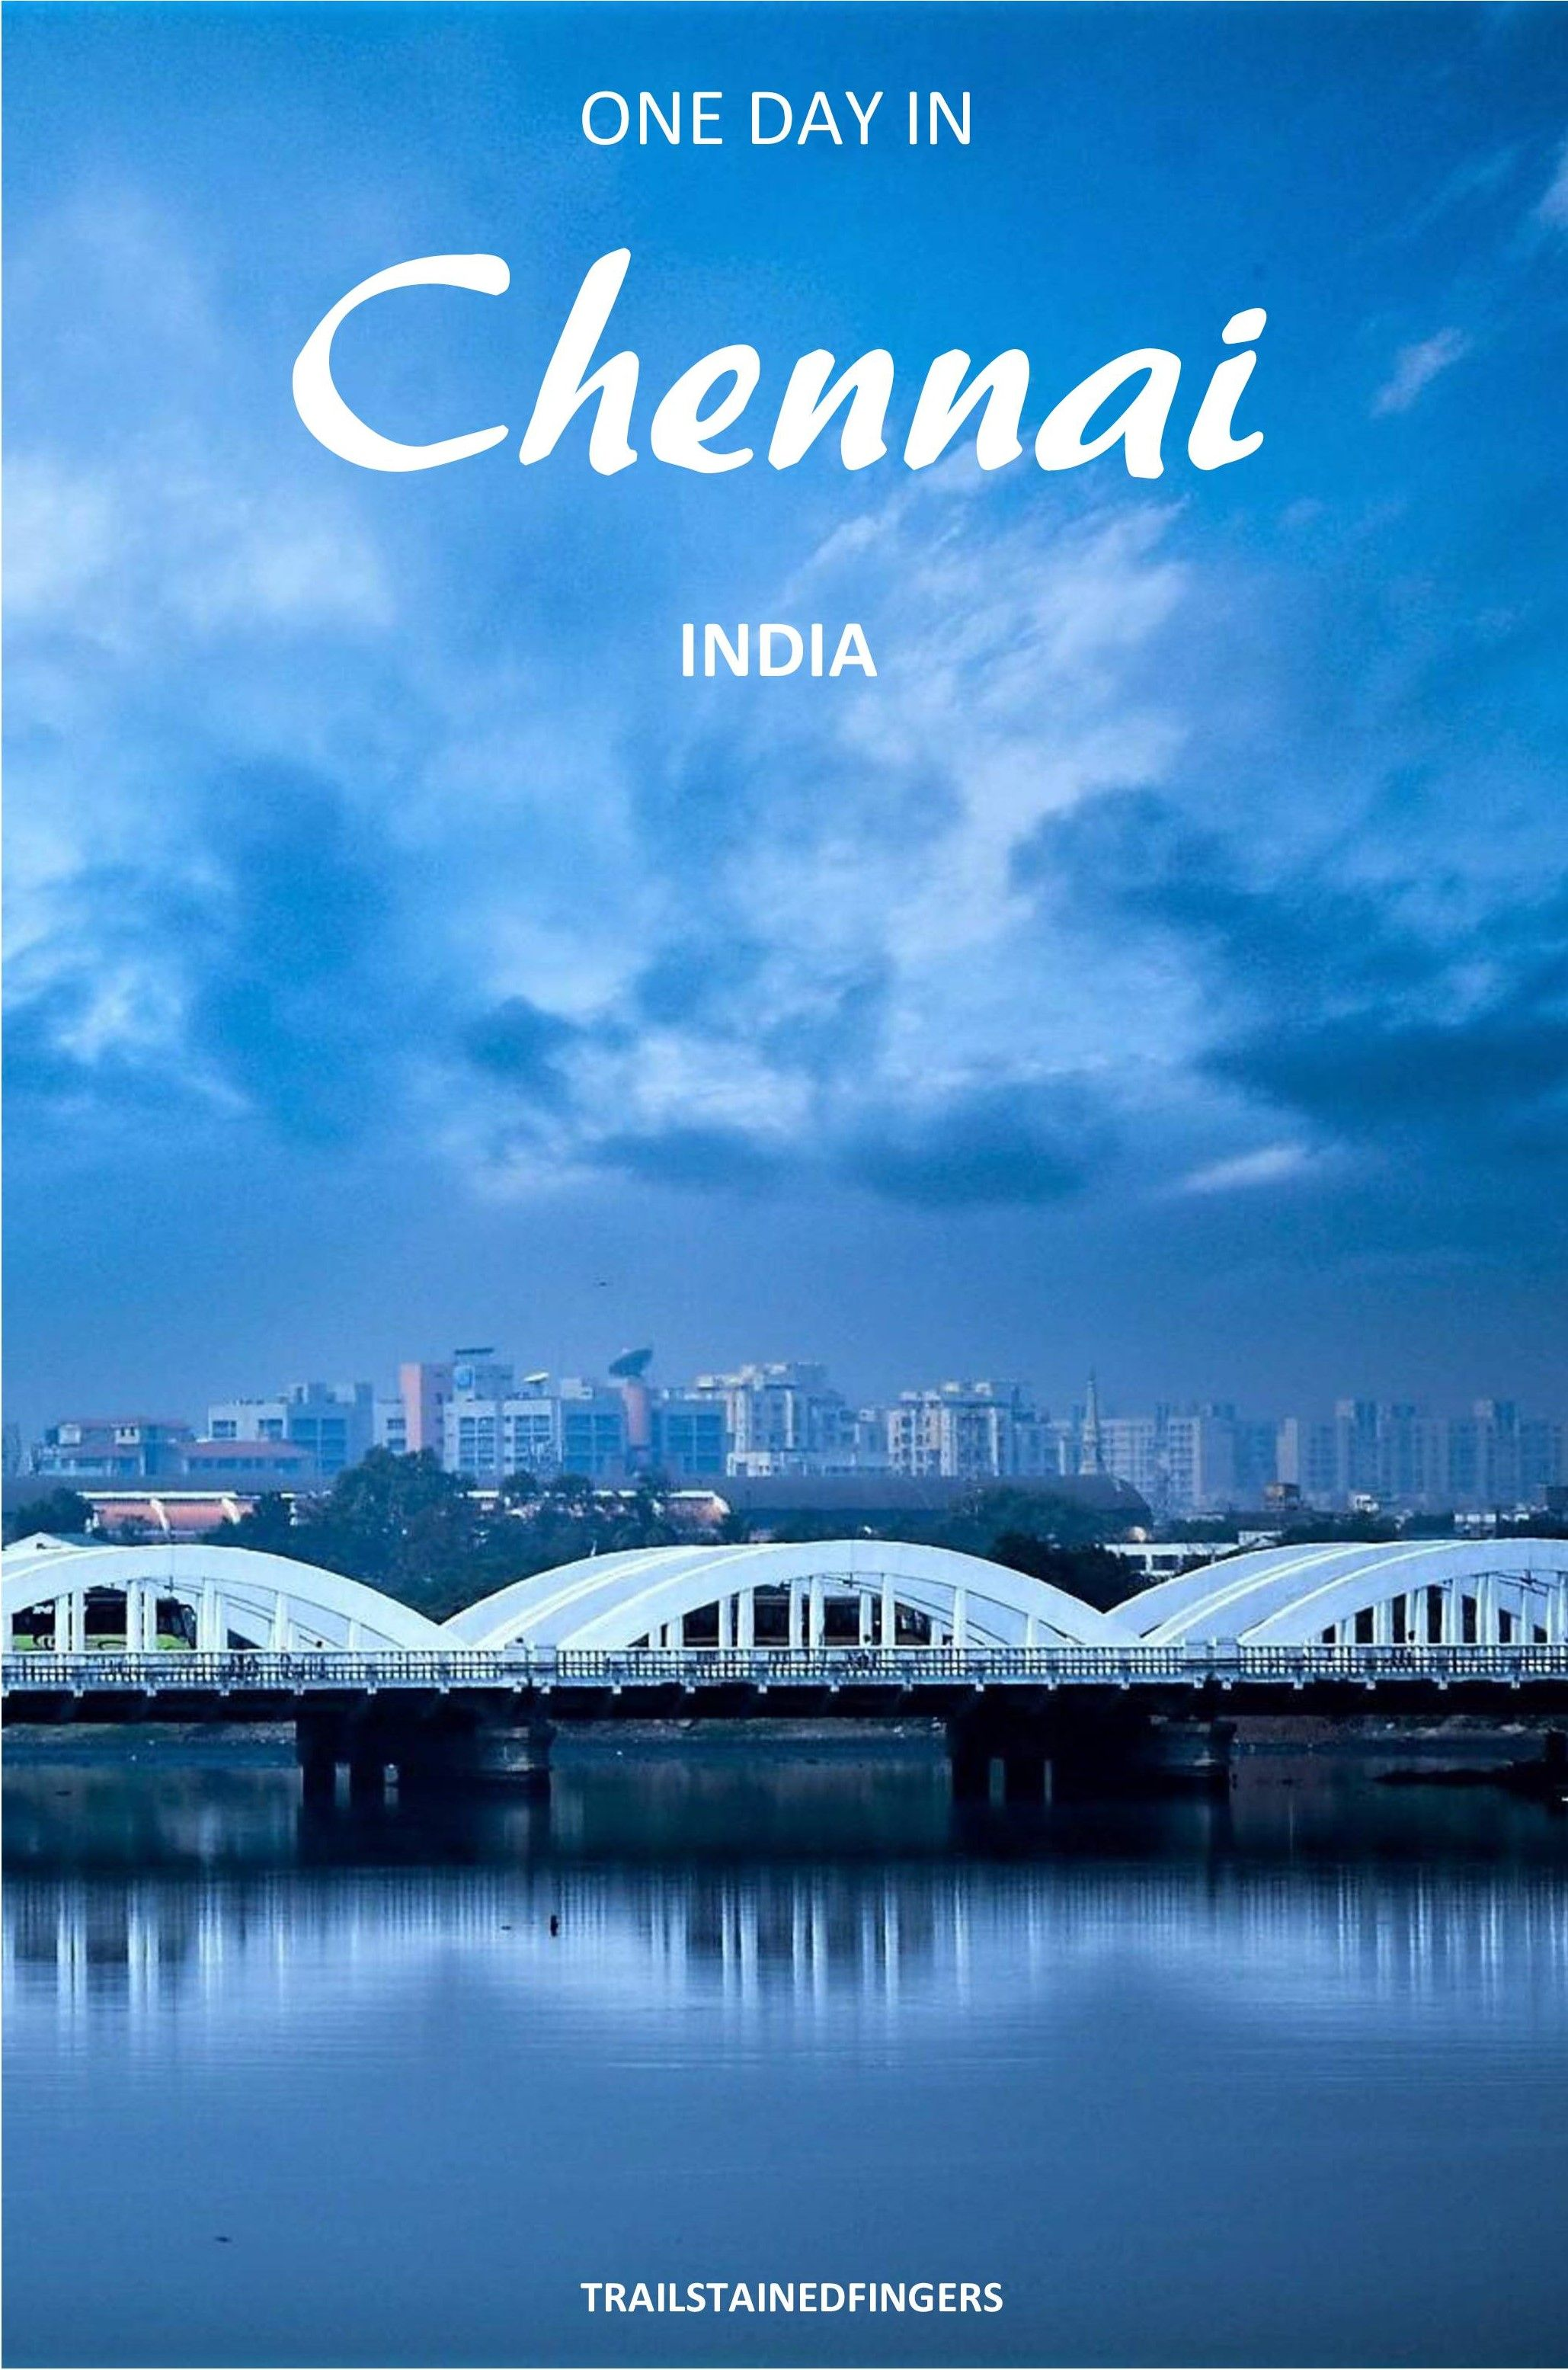 Have only one day in #Chennai? Must-see places include churches, beaches, and museums. And how can food not be a part of this 24 hours #travel guide? This travel #blog features Marina Beach, San Thome Church, Egmore Museum, and more.  #travelblog #travelguide #chennaiblog #chennaitravel #24hoursinchennai